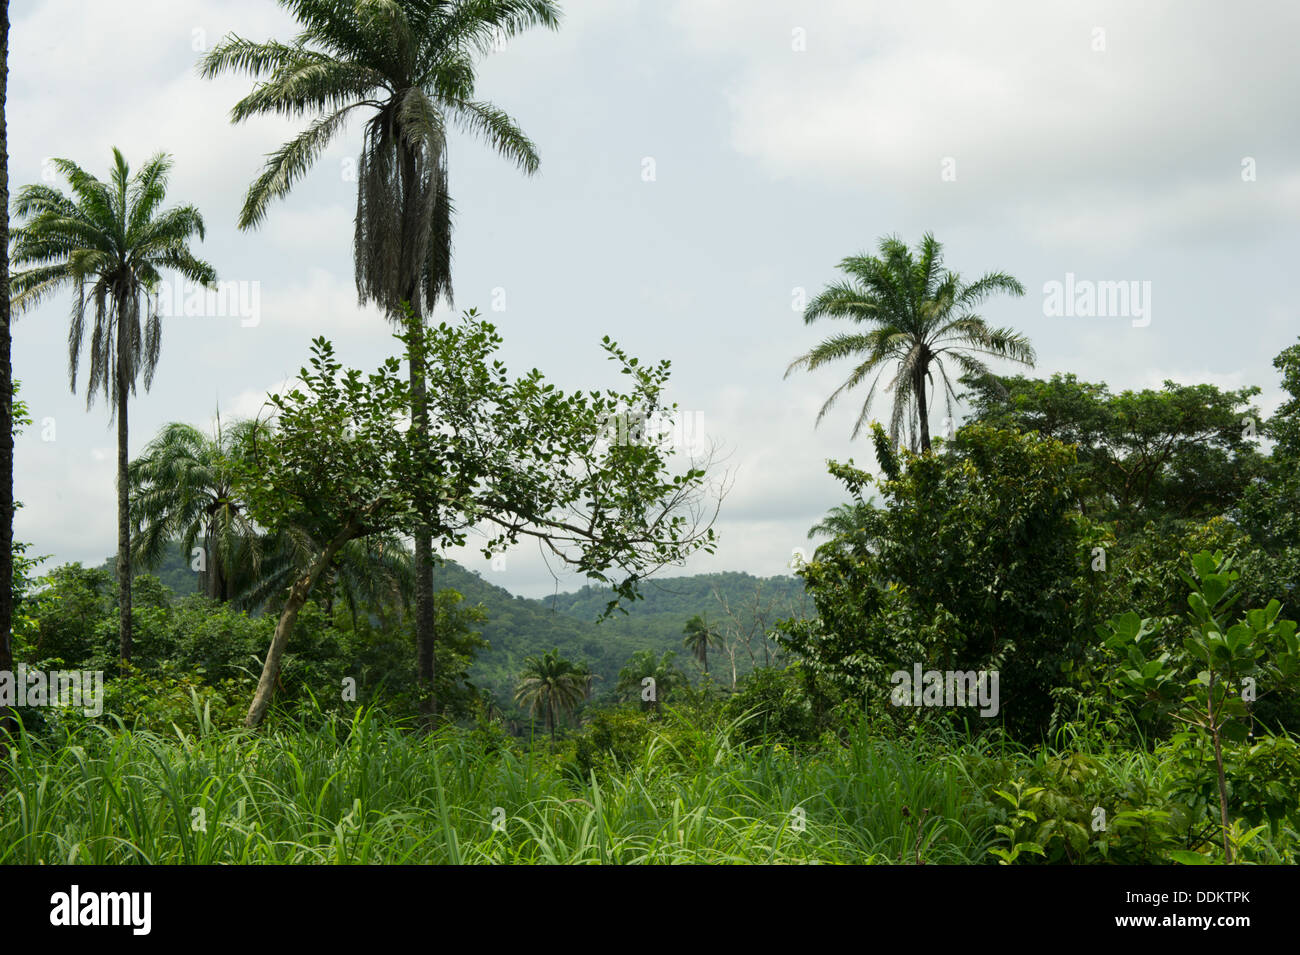 Luxuriant vegetation in Otutulu, Nigeria - Stock Image